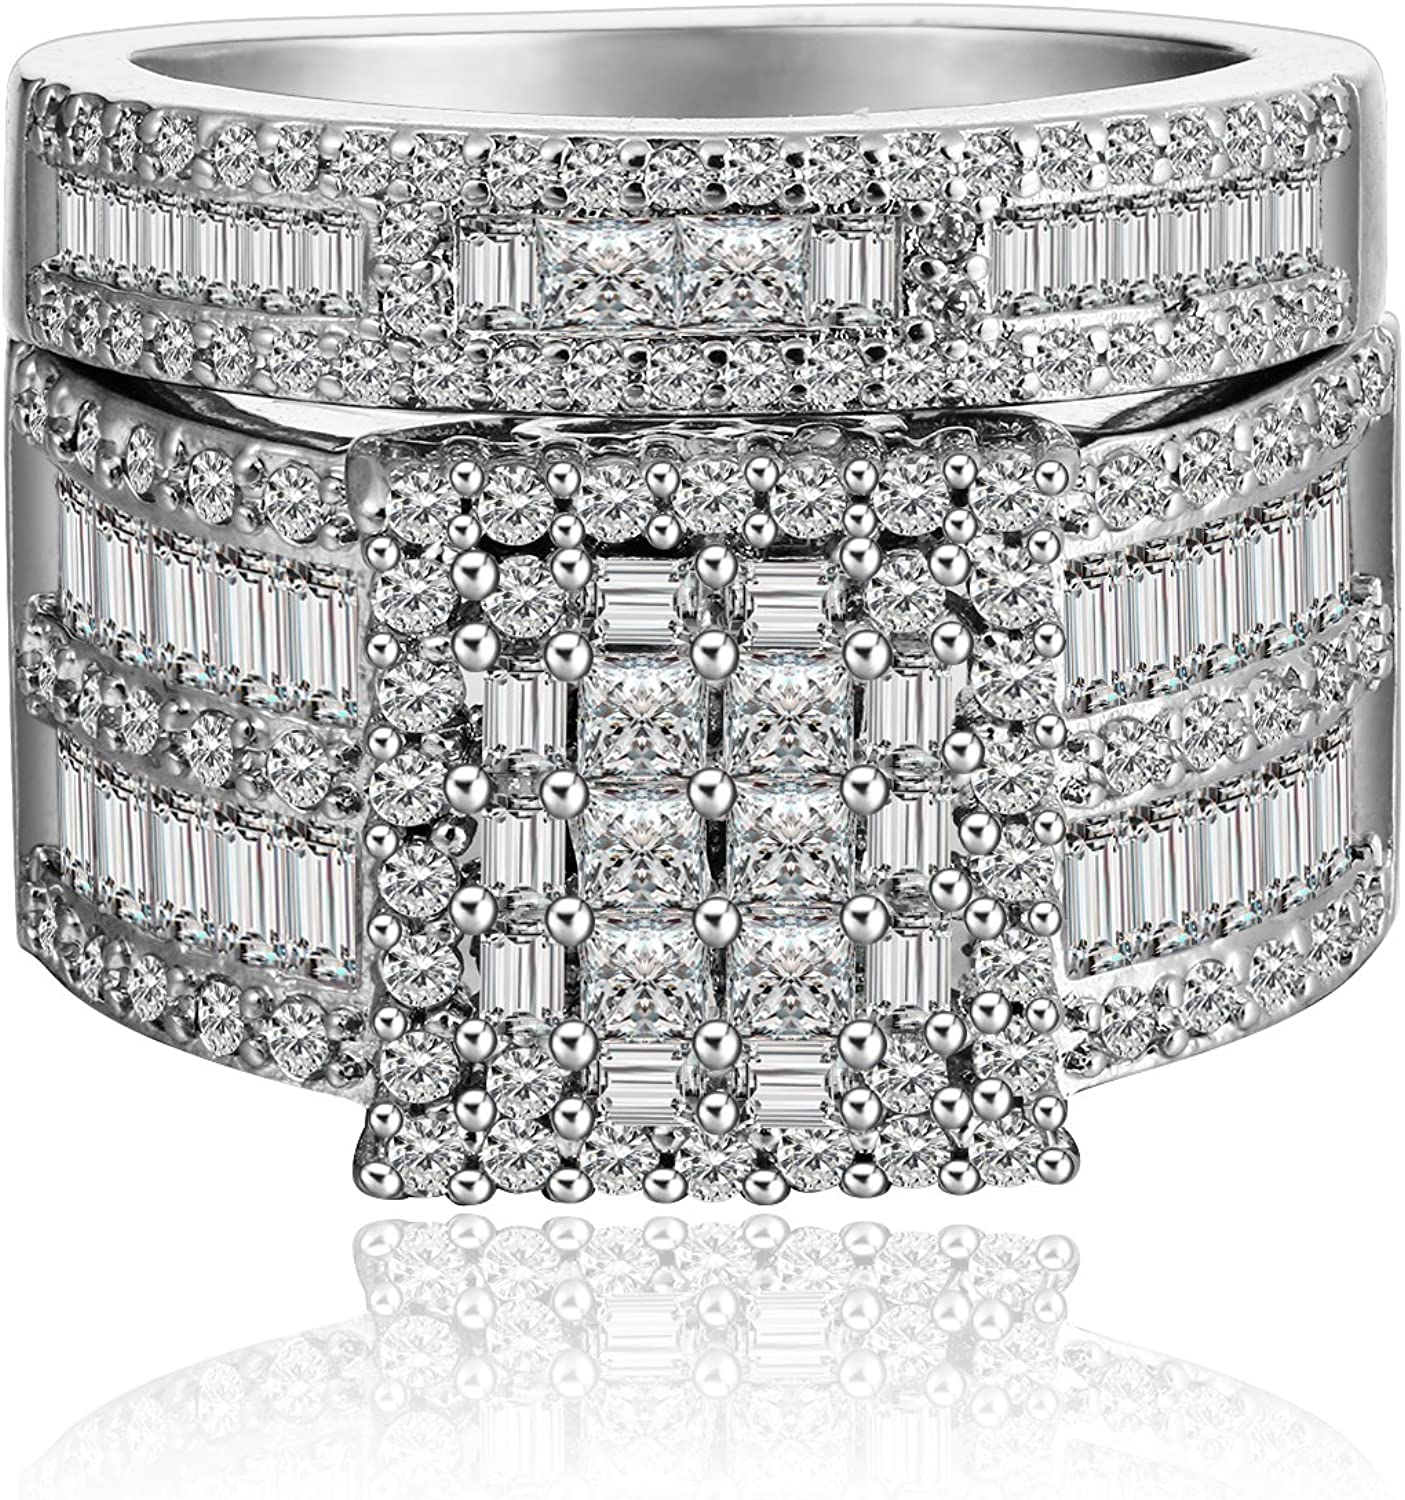 It is a picture of Camilla Square Cubic Zirconia Engagement Ring Wedding Band Bridal Set for Women by Ginger Lyne Ultra Wide Width Baguette and Round Multi Cut Stones